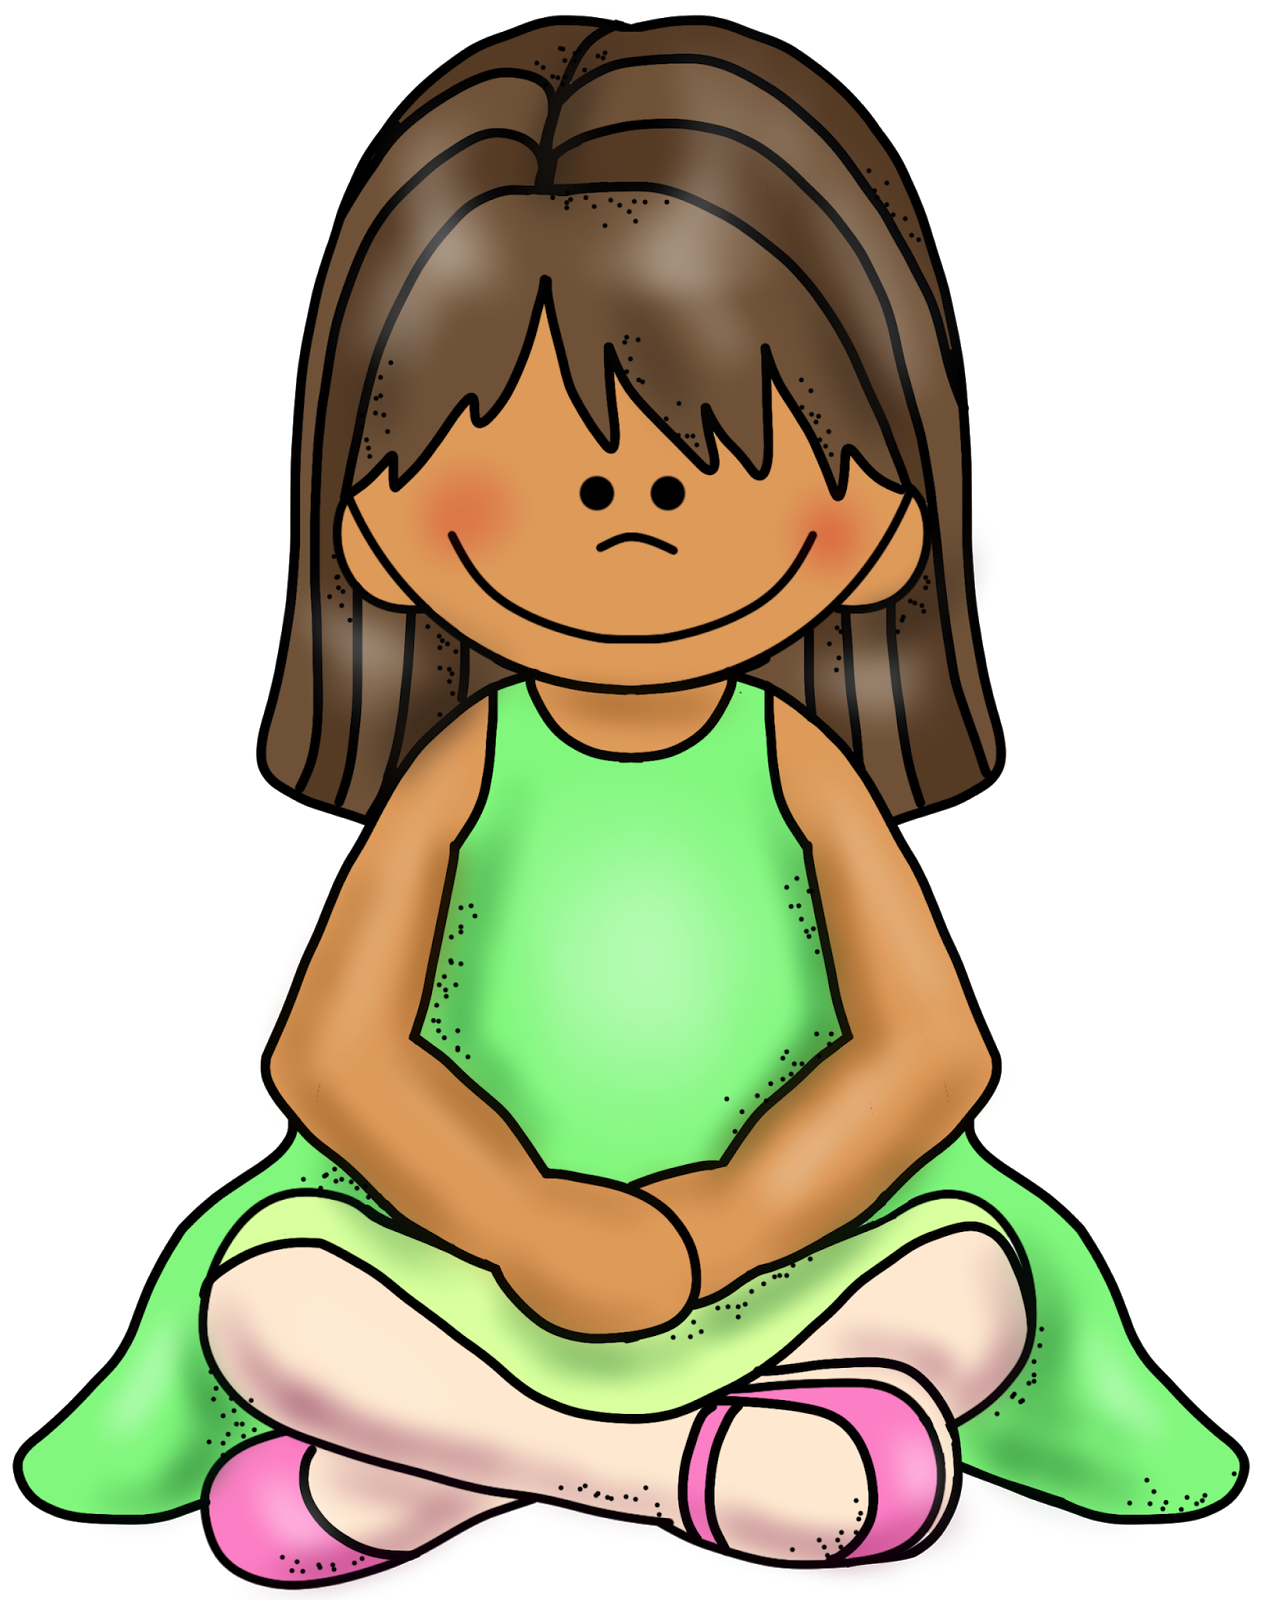 sitting criss cross applesauce clipart | Classroom Bulletin ... banner free stock